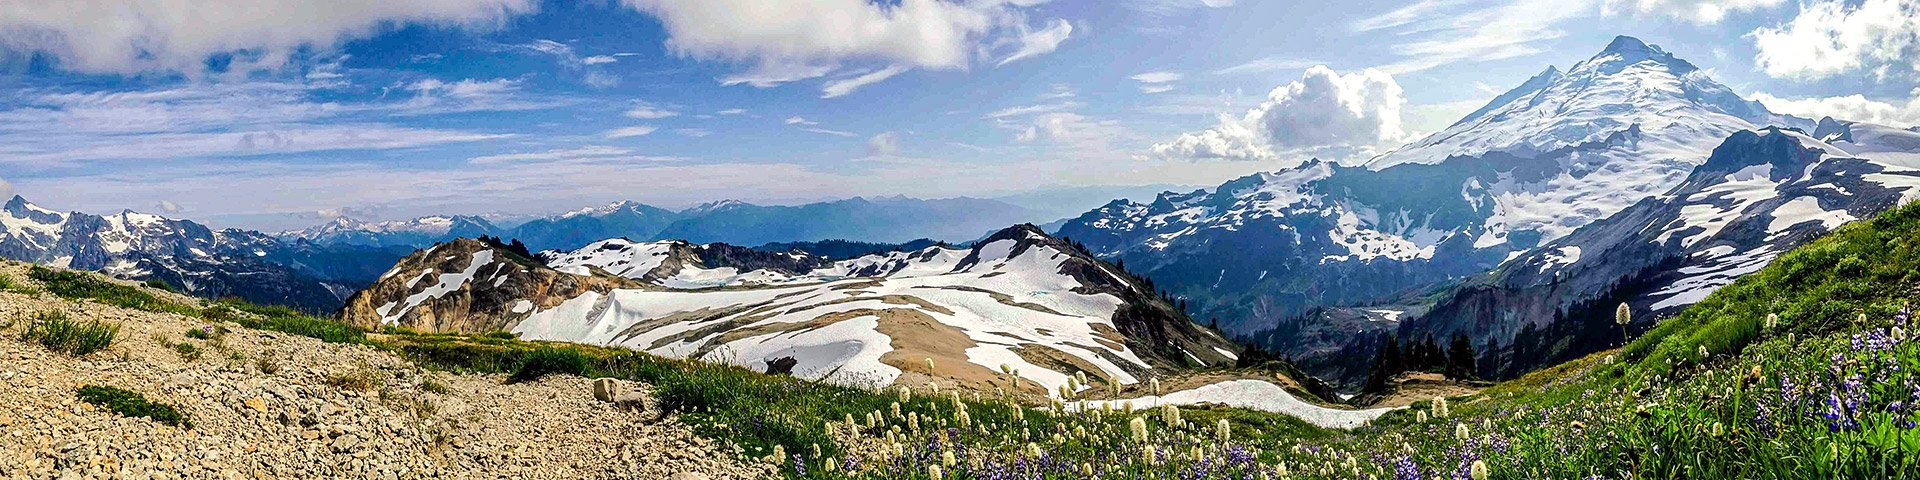 Mt. Baker Hikes | Best Mt. Baker Hiking Trails | 10Adventures